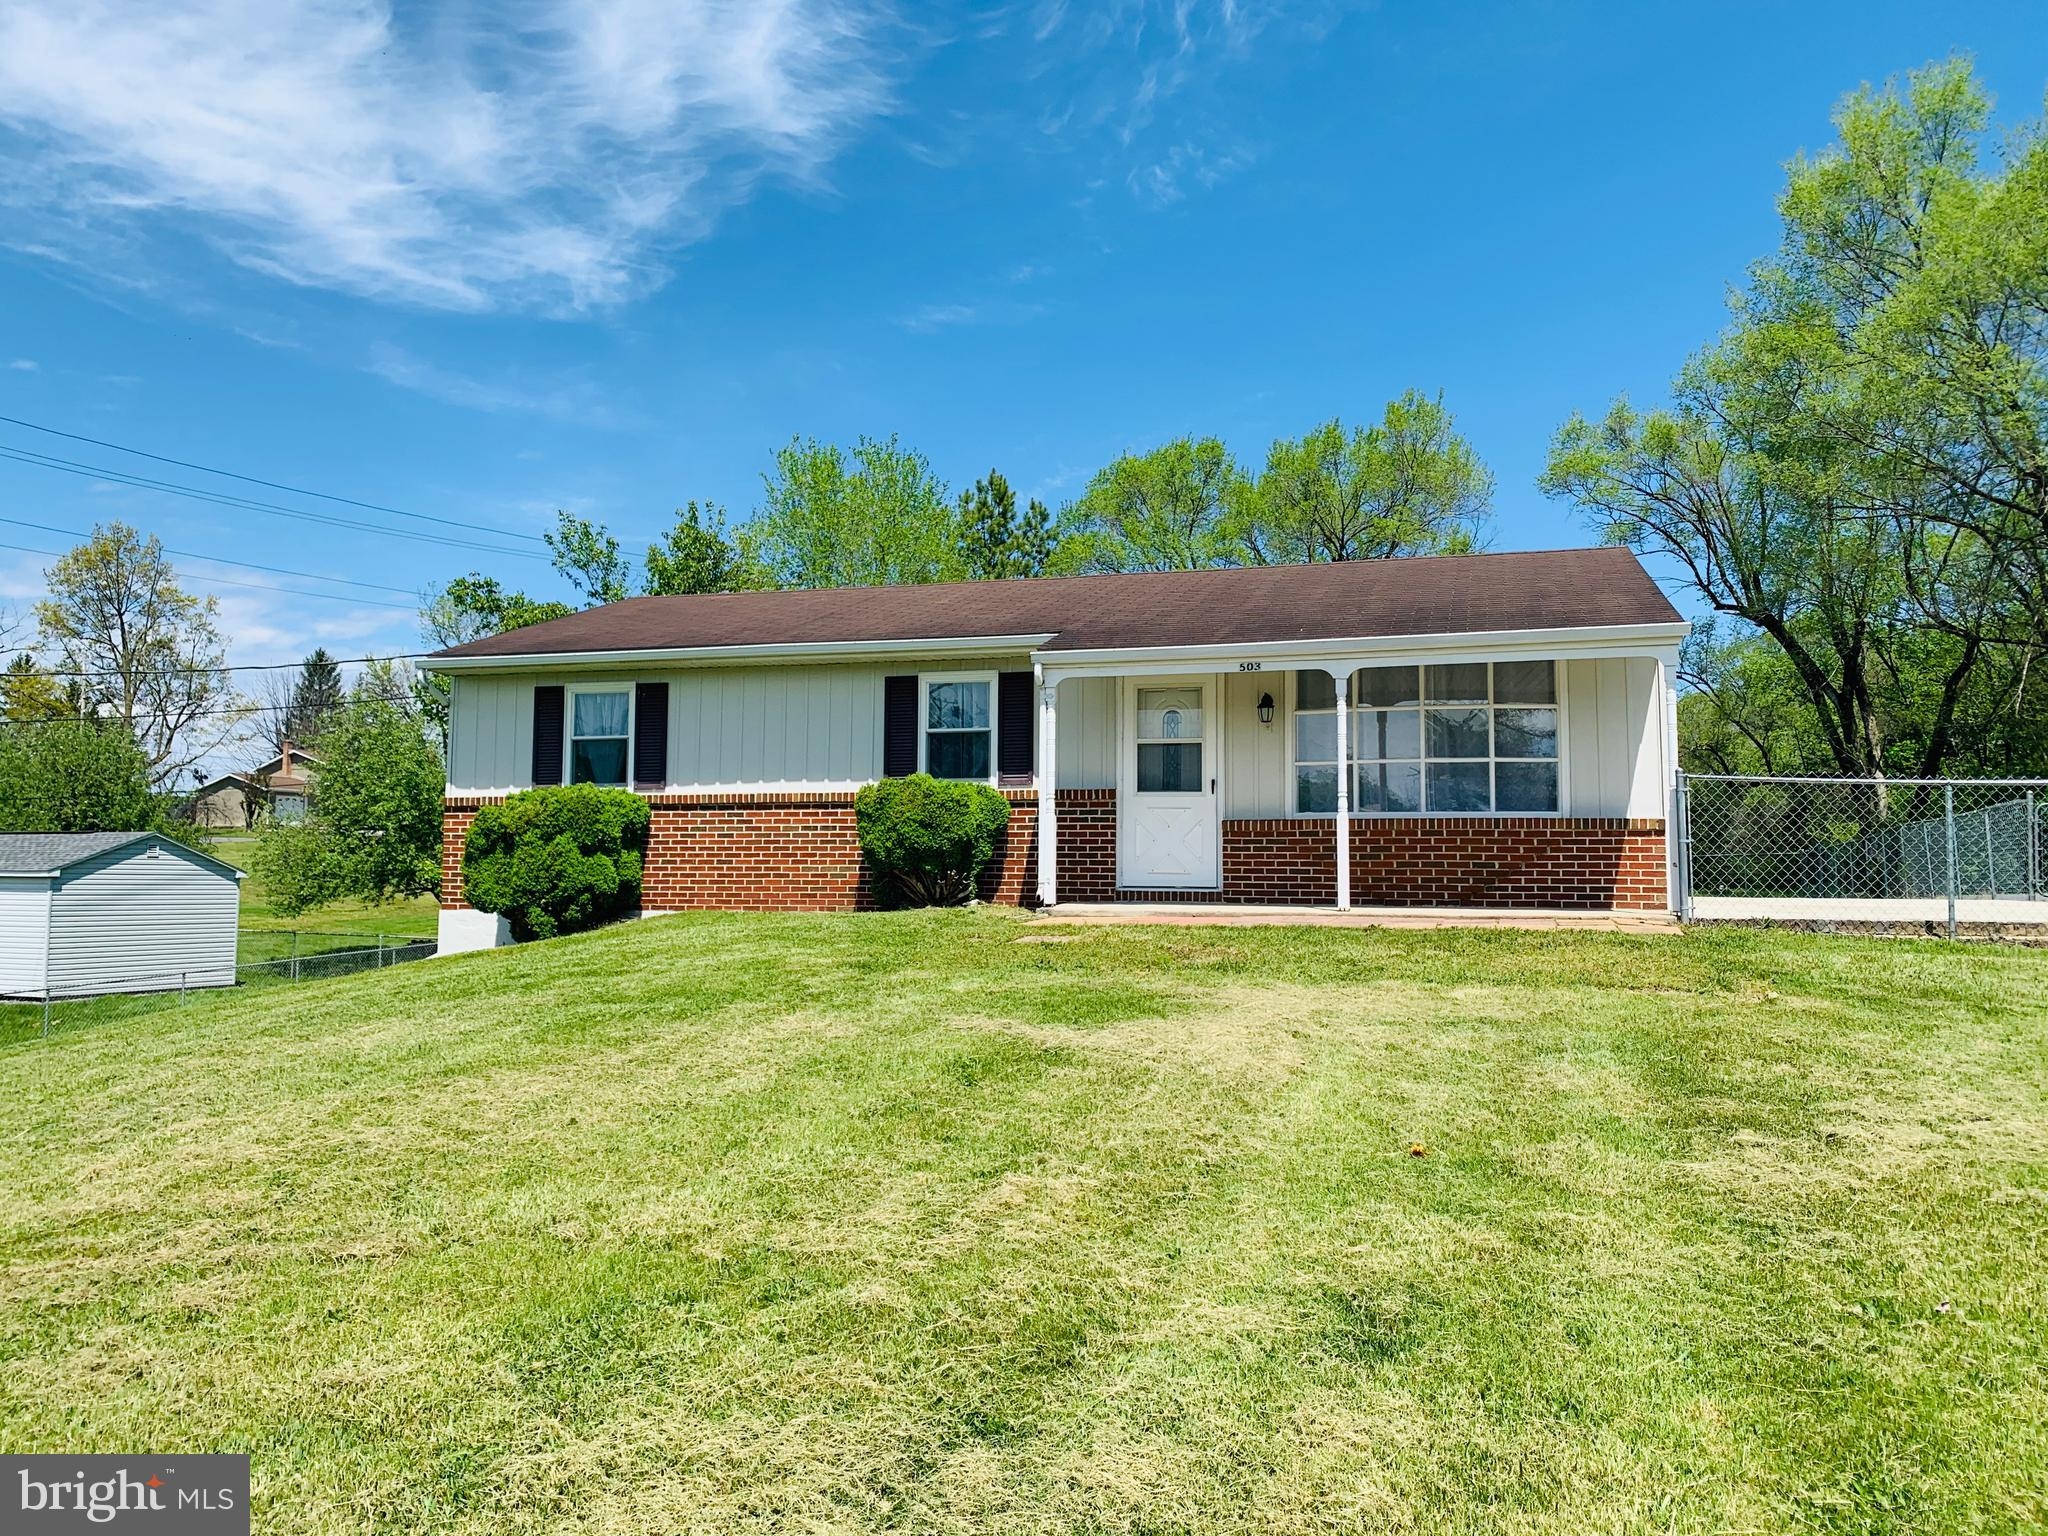 Ranch style home located near downtown Martinsburg features 4 BRs, 2 FBs, fully finished basement with fresh paint and flooring. Seller offering a Home Warranty.